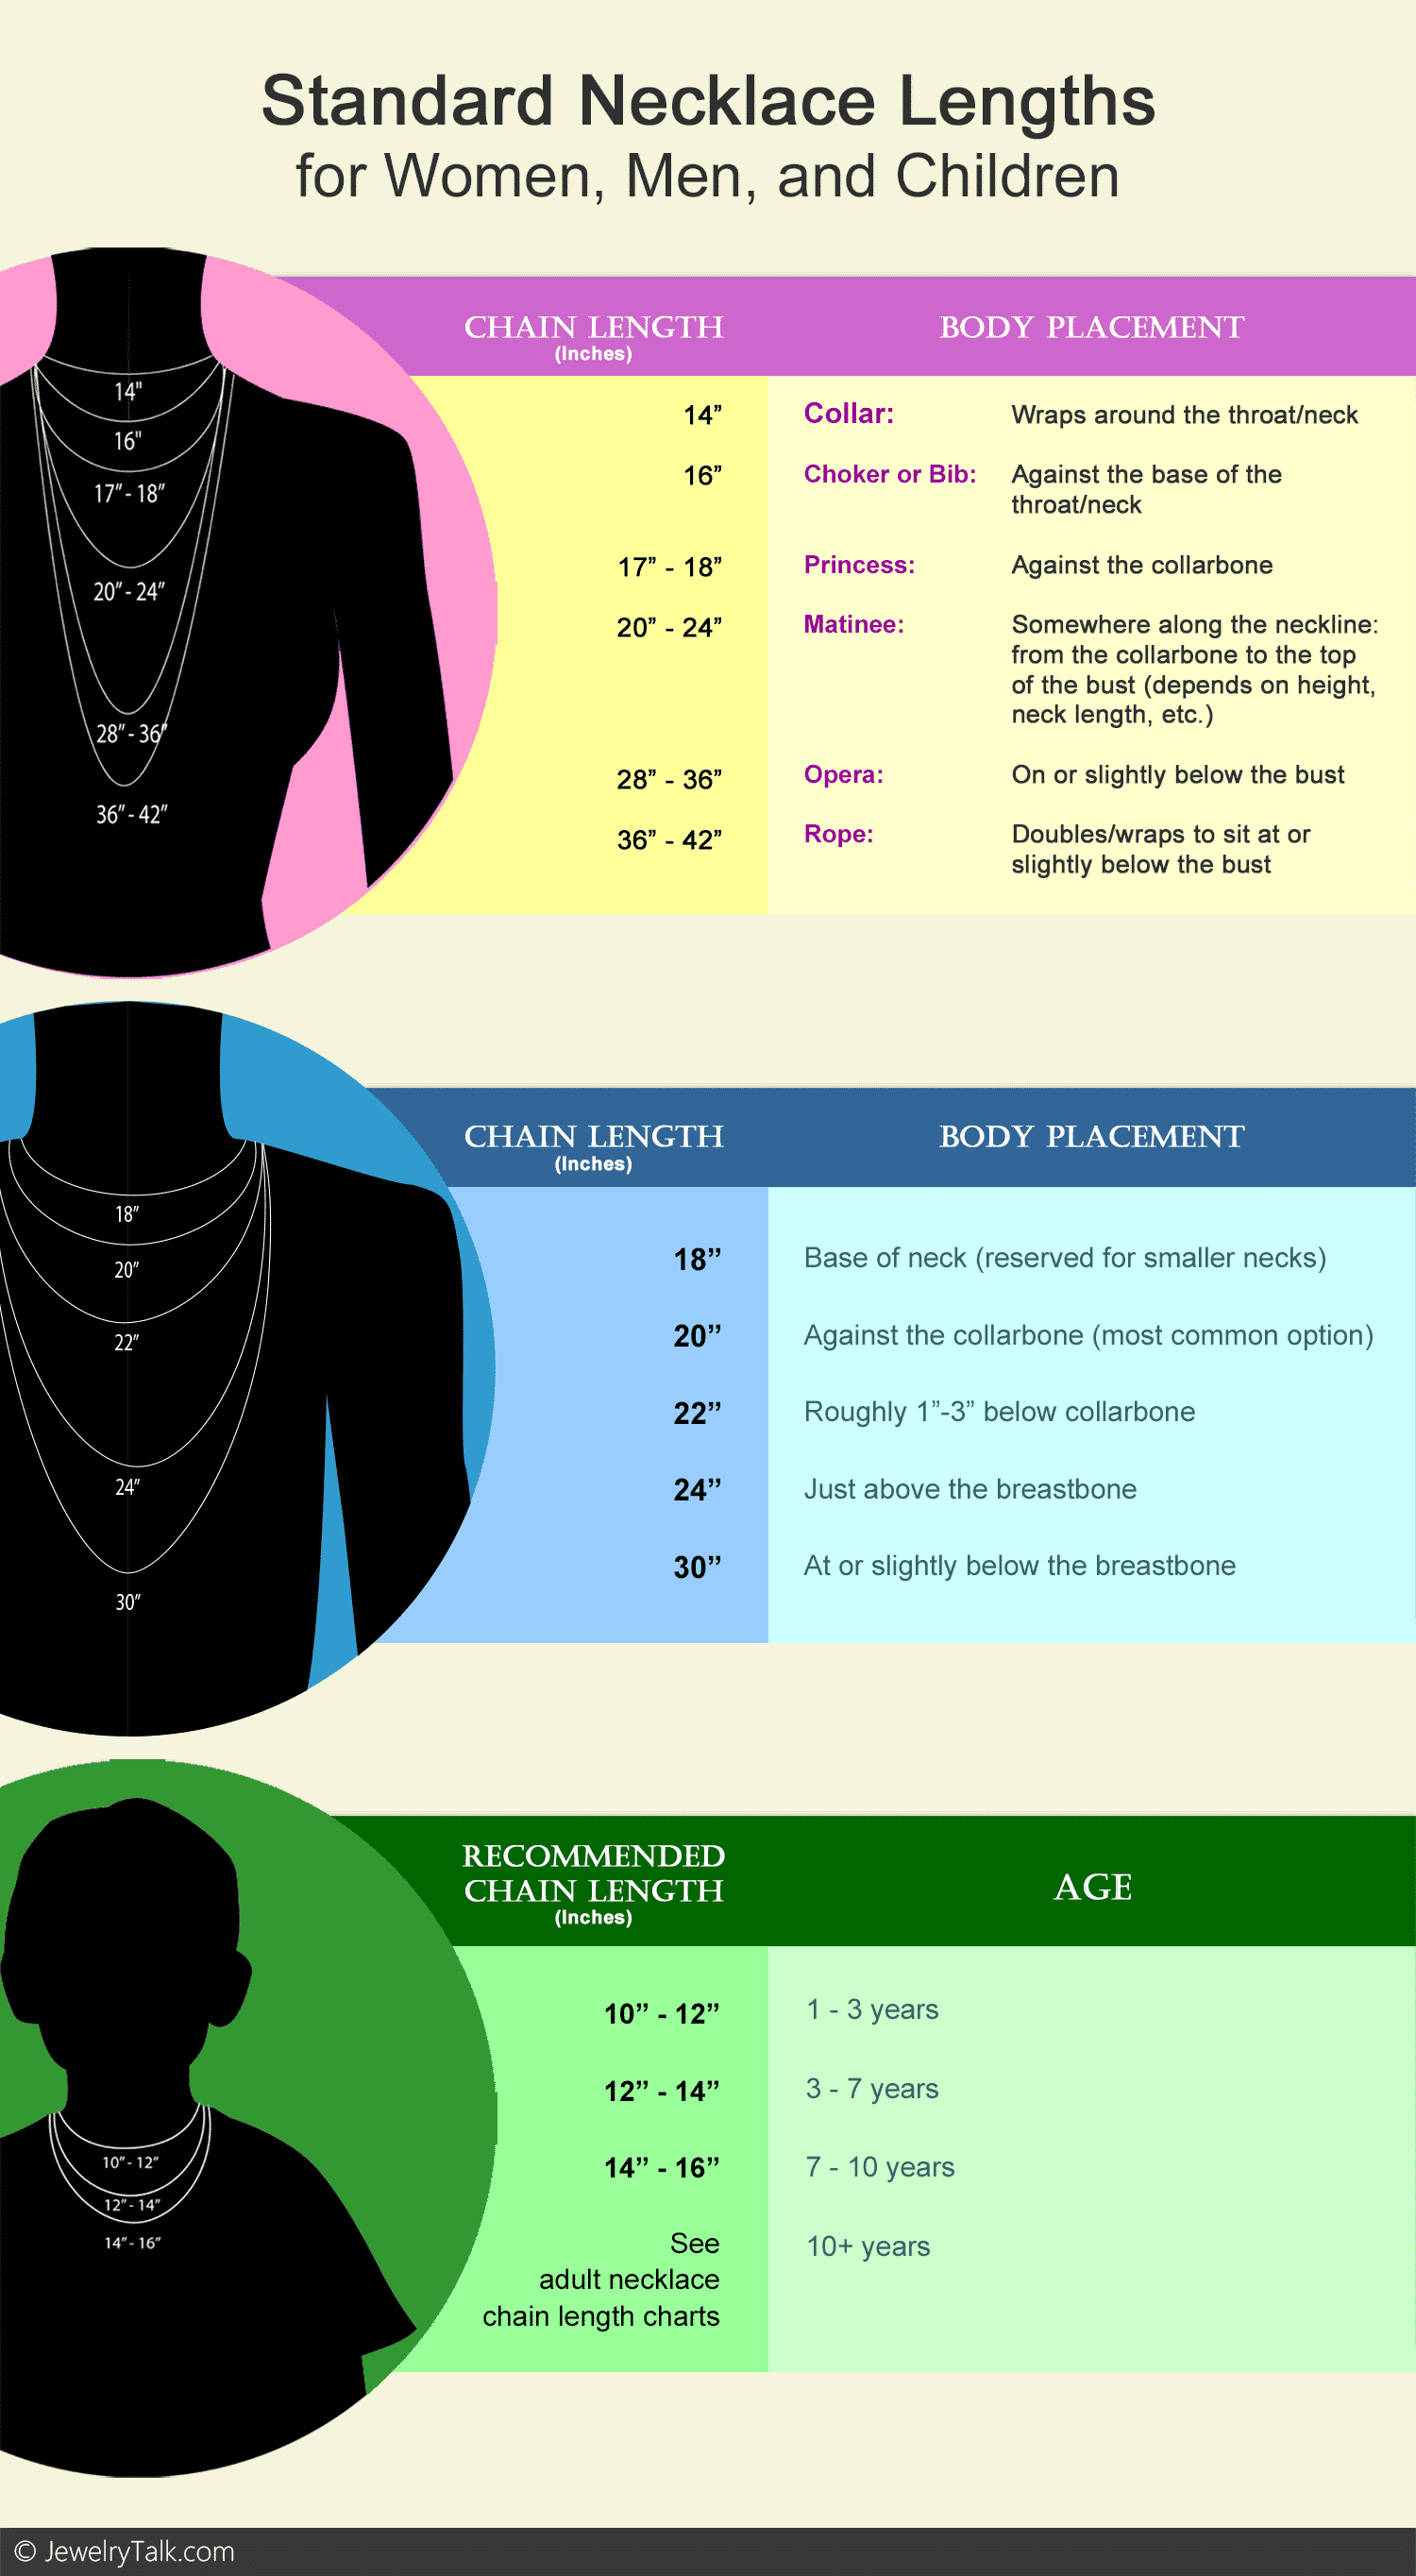 Standard Necklace Lengths for Women, Men, and Children (Size Charts)